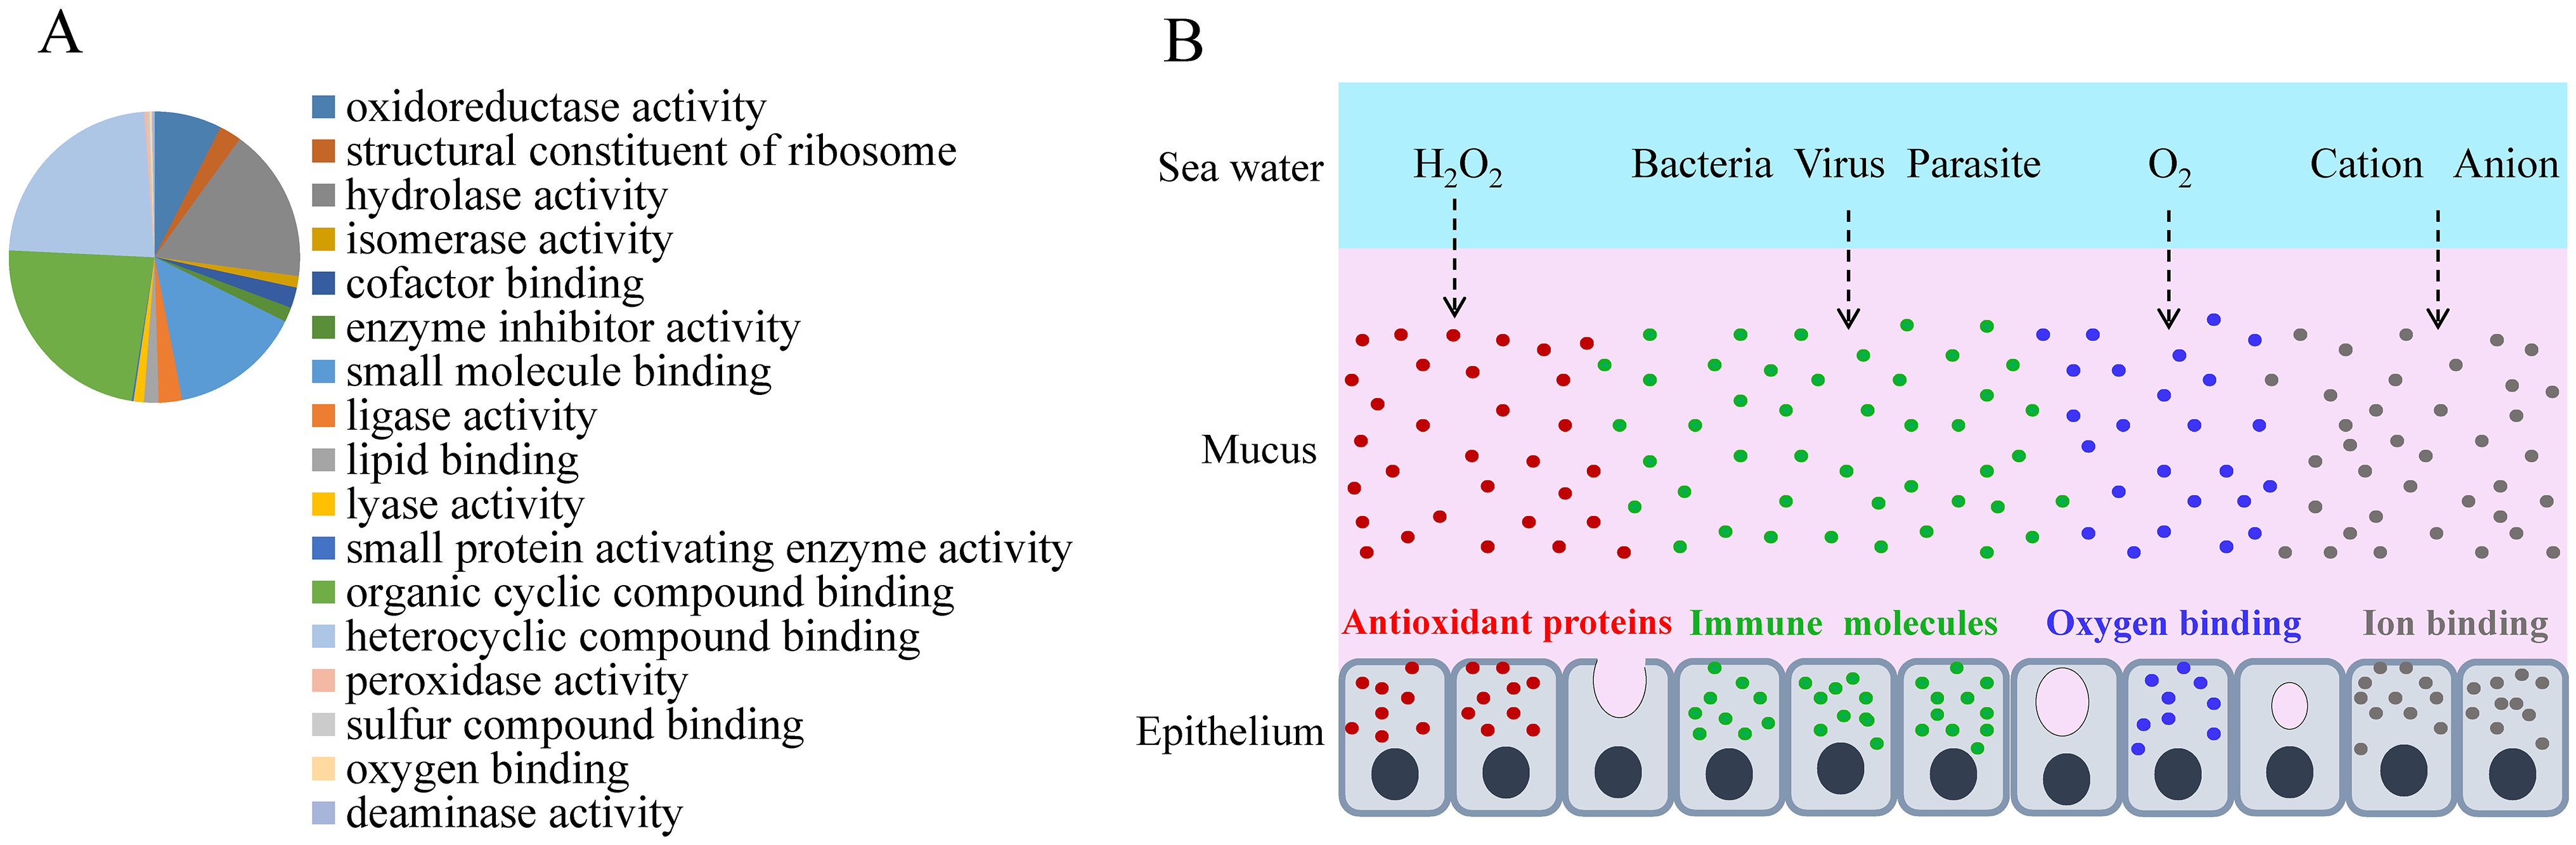 Skin mucus proteins are overexpressed in air-exposed <i>L</i>. <i>crocea</i>.